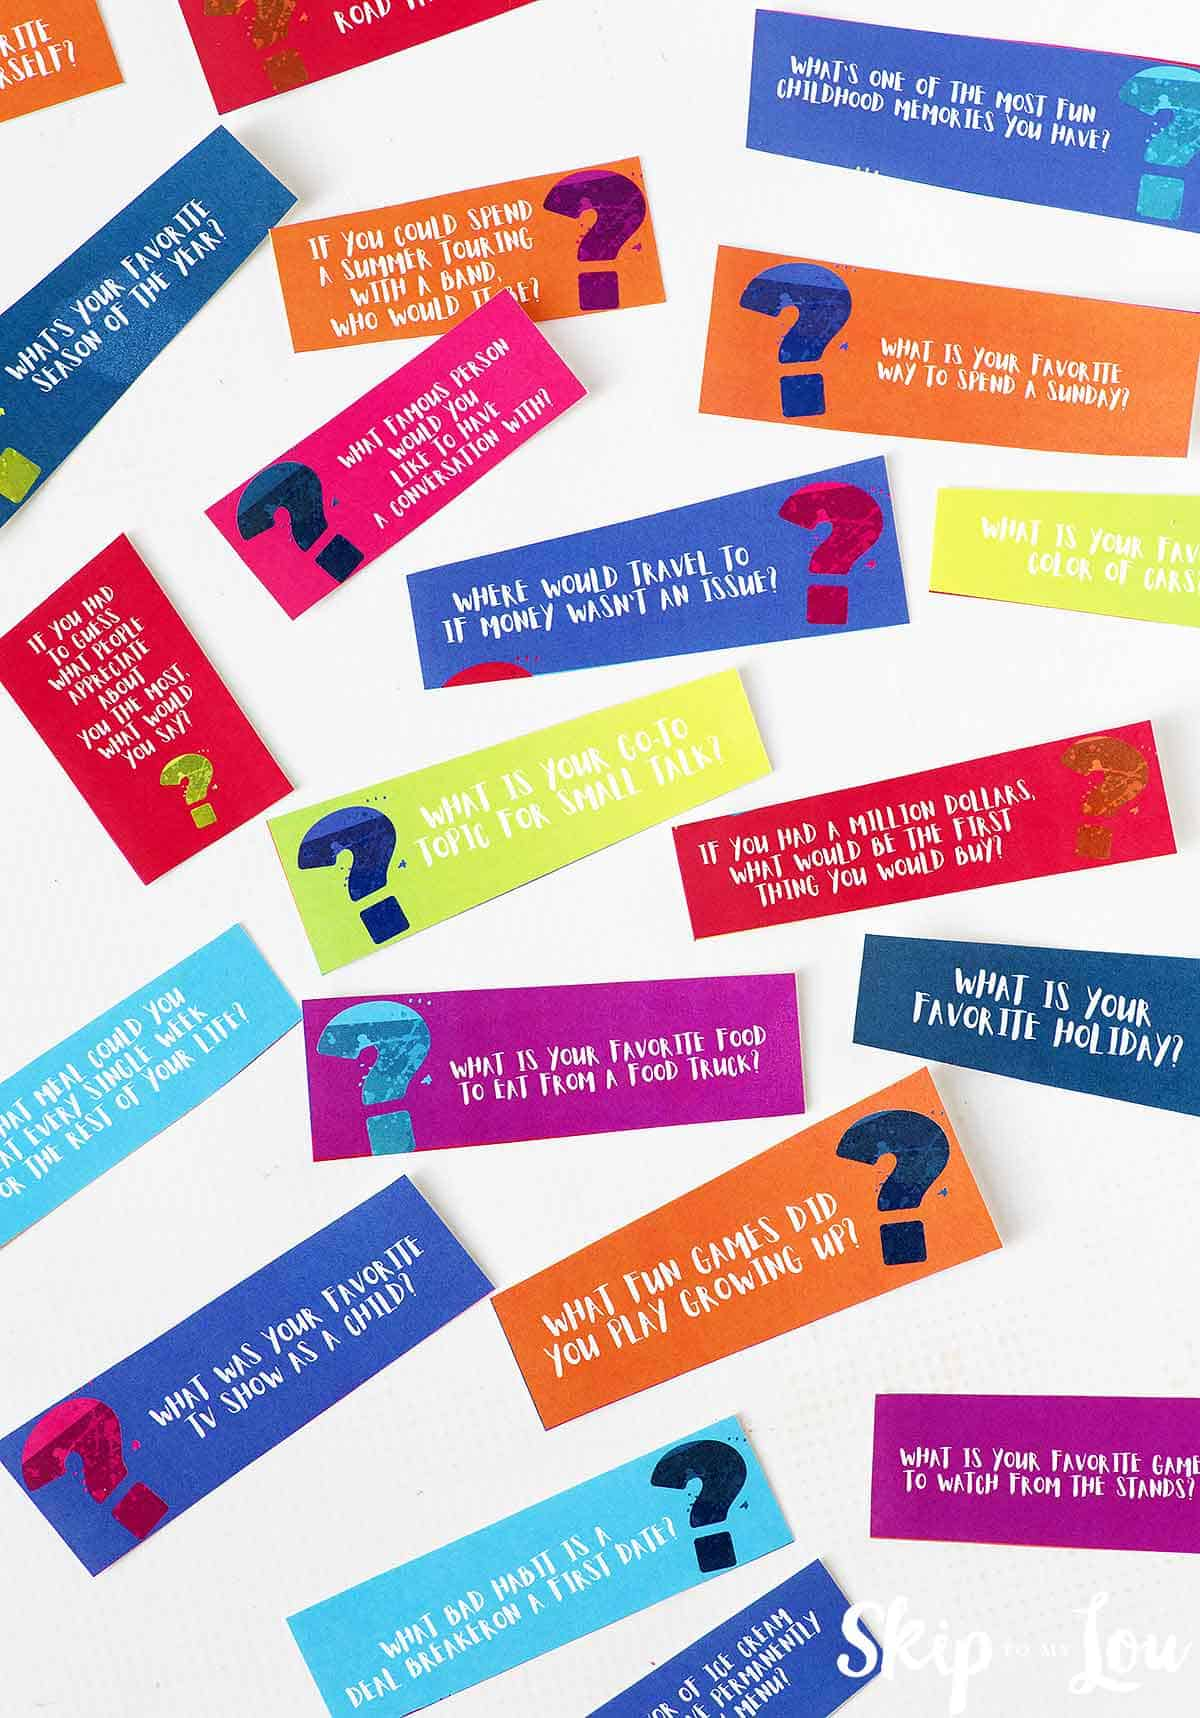 colorful 21 questions cards on white background